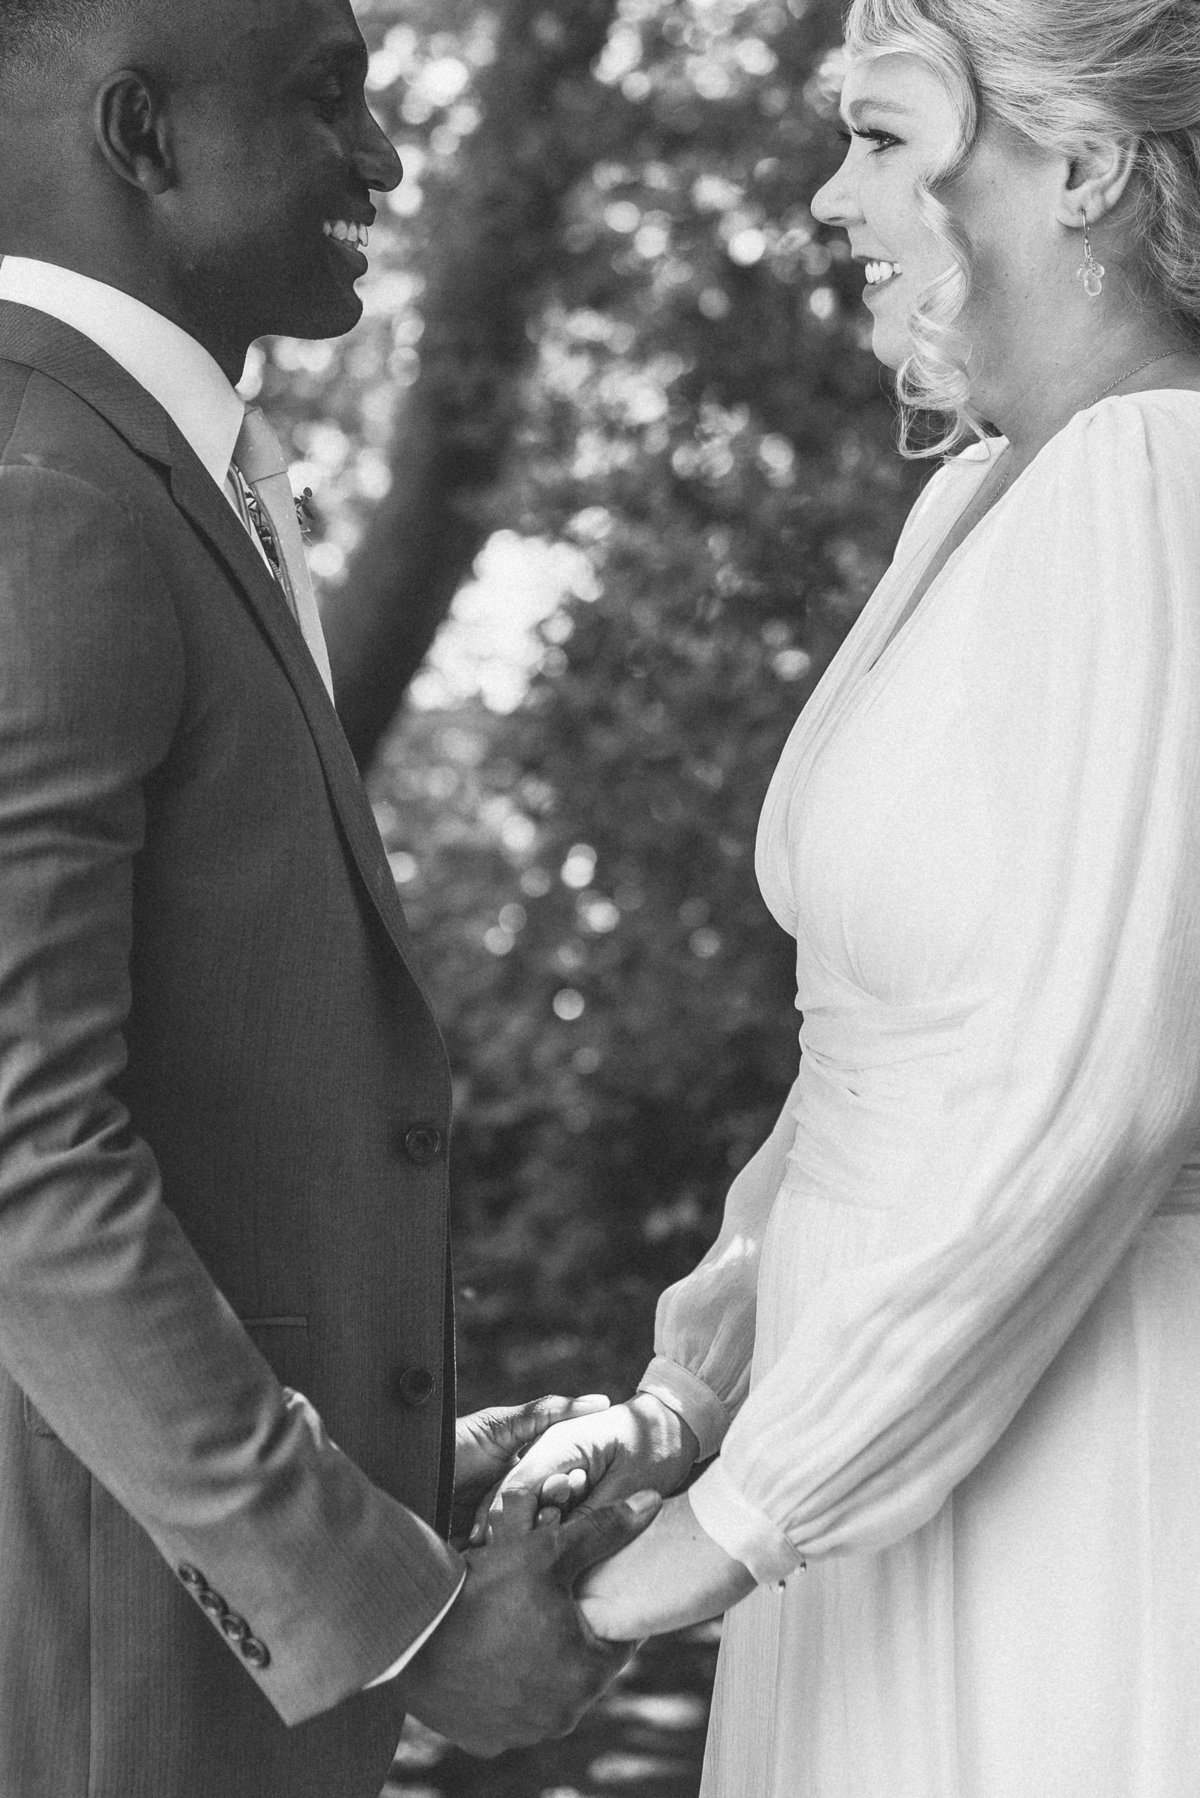 Lauren&Lewis.Wedding.CristalVeronica2018-1